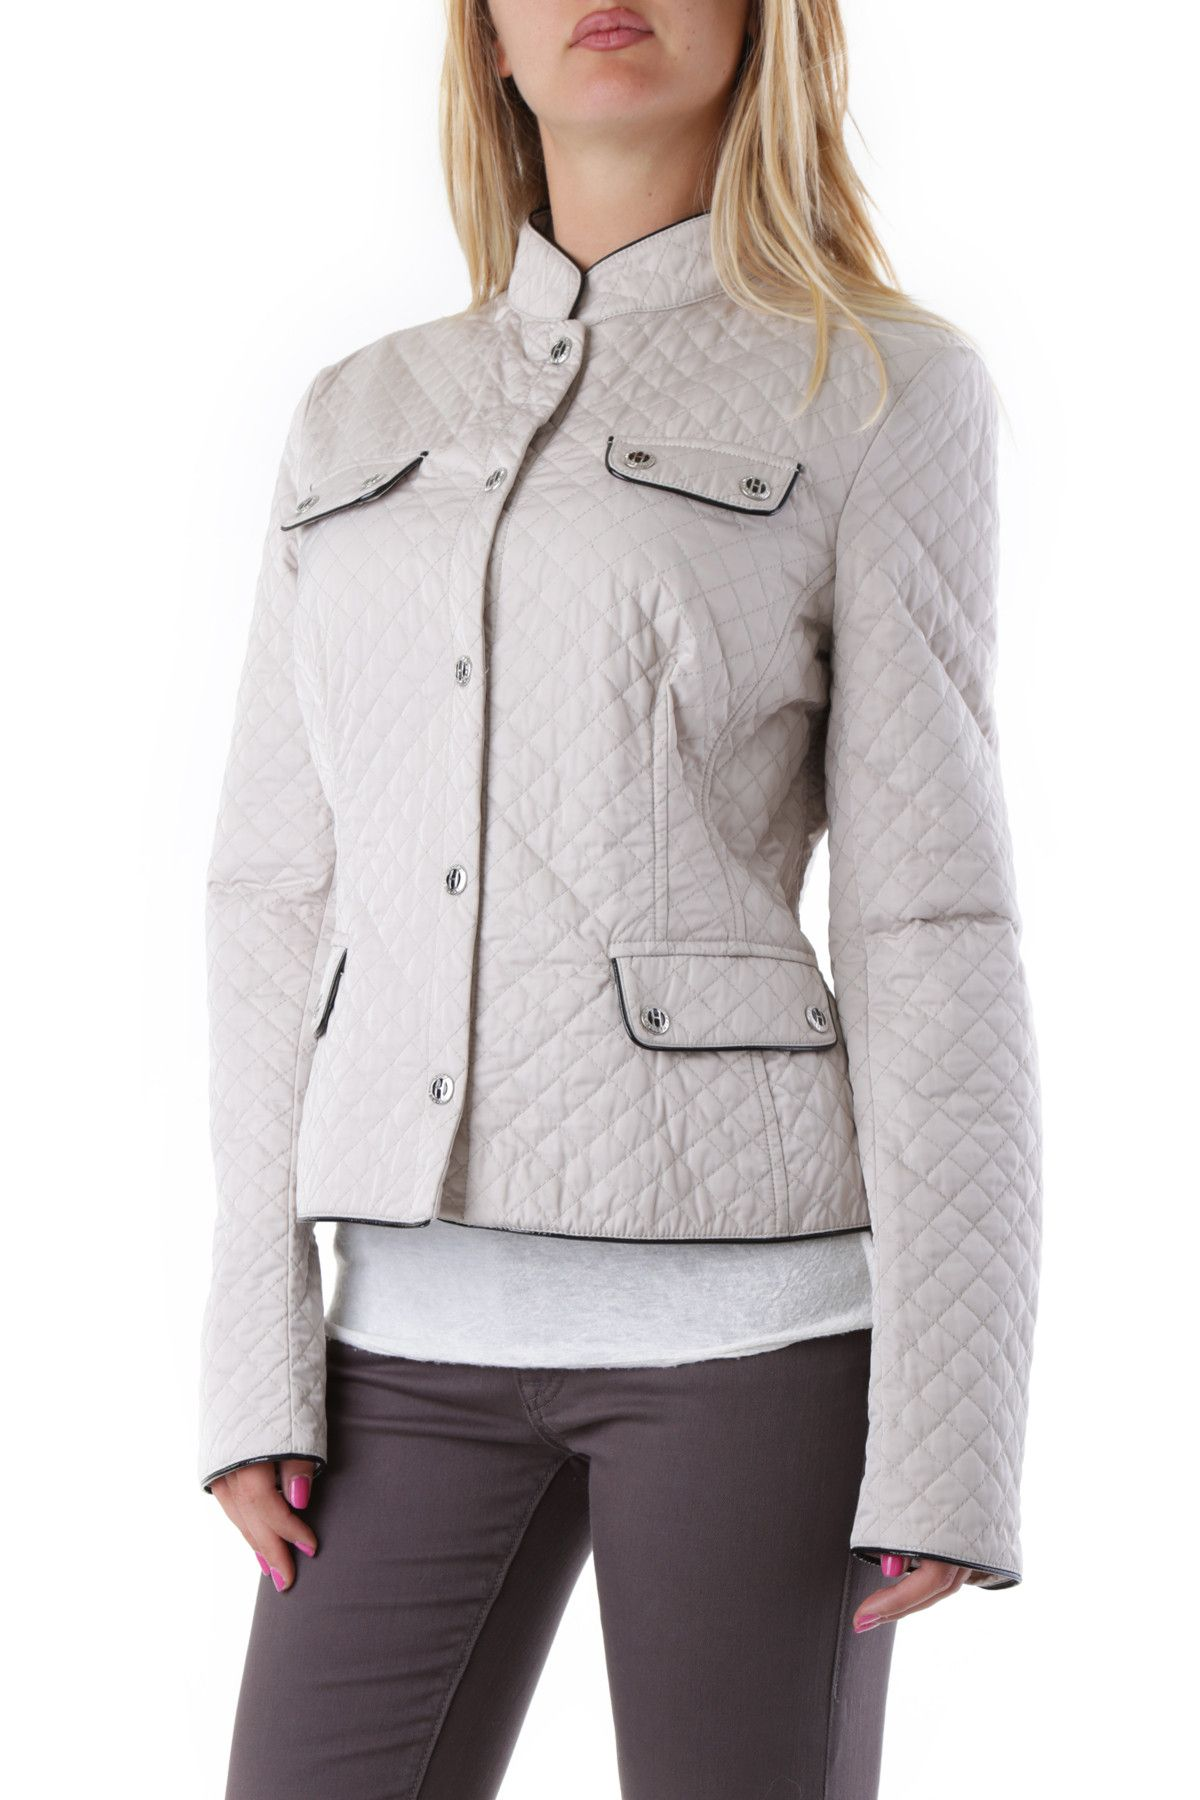 Husky Women's Jacket In Beige